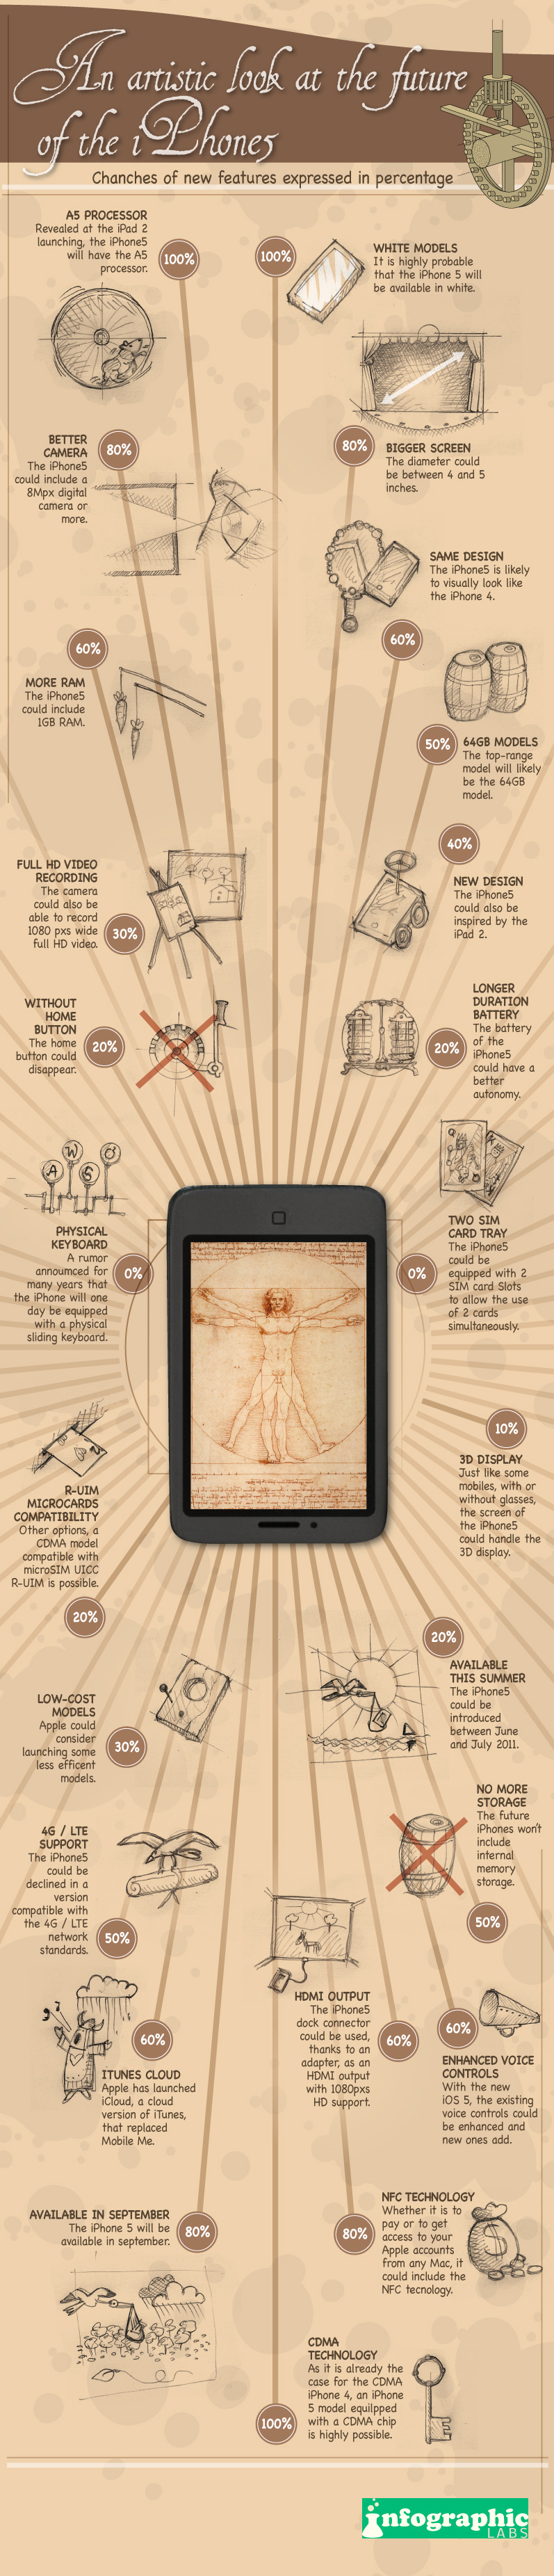 iphone5 infographic rumors An artistic look at the iPhone 5 rumor mill [Infographic]